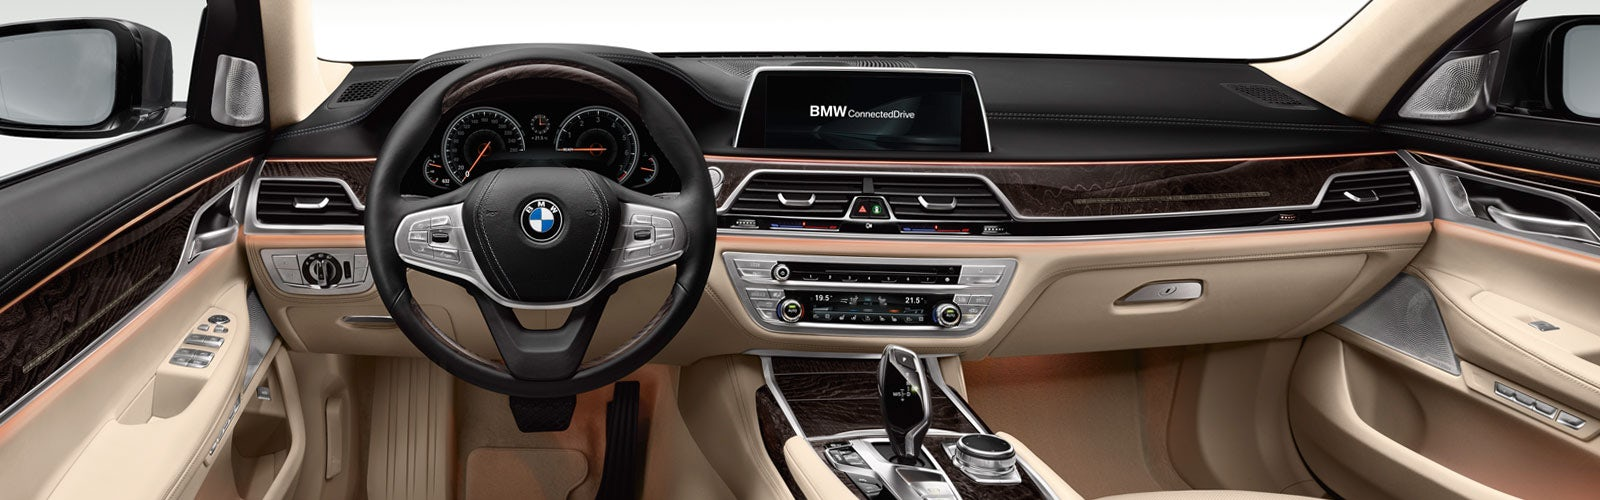 2018 bmw x7 price specs and release date carwow. Black Bedroom Furniture Sets. Home Design Ideas